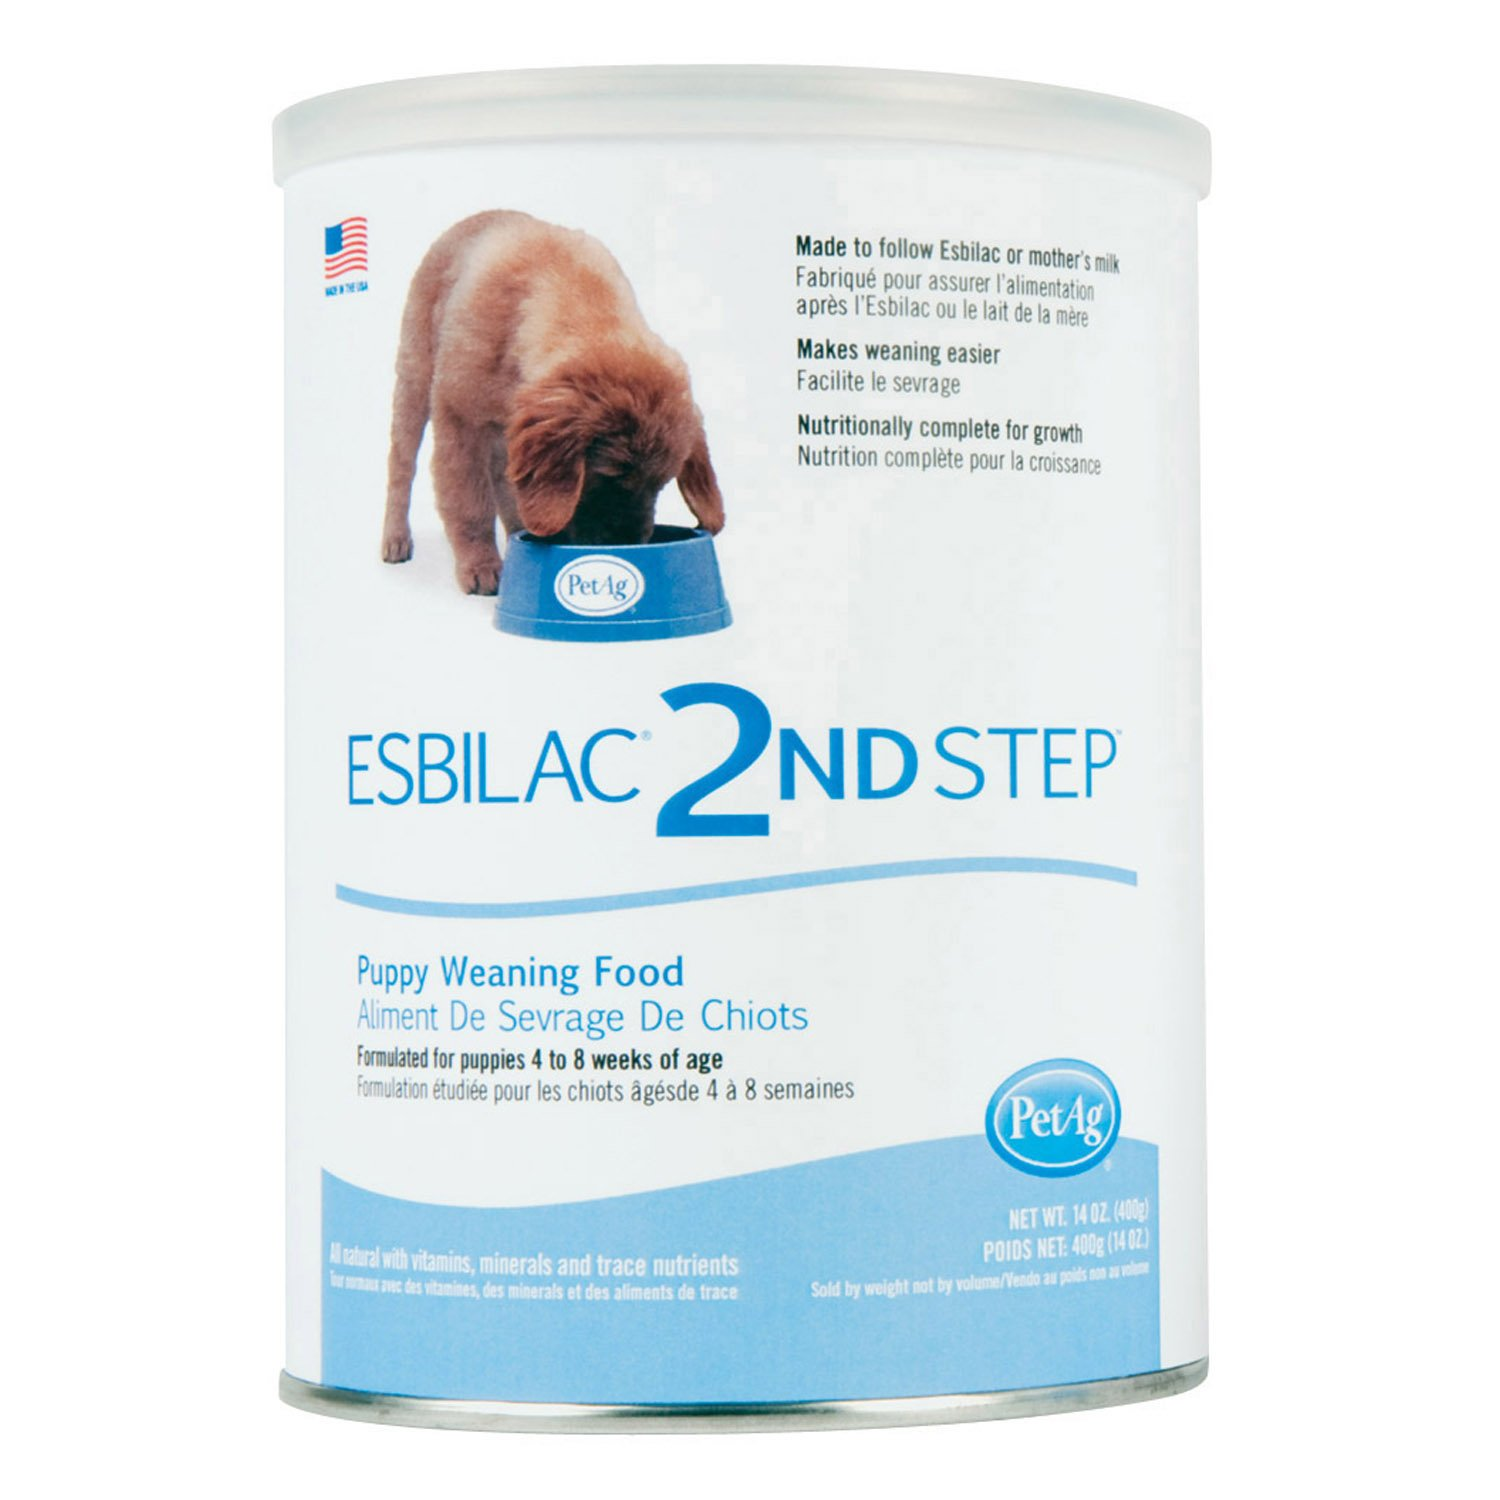 Petag Esbilac 2nd Step Puppy Weaning Food Petco